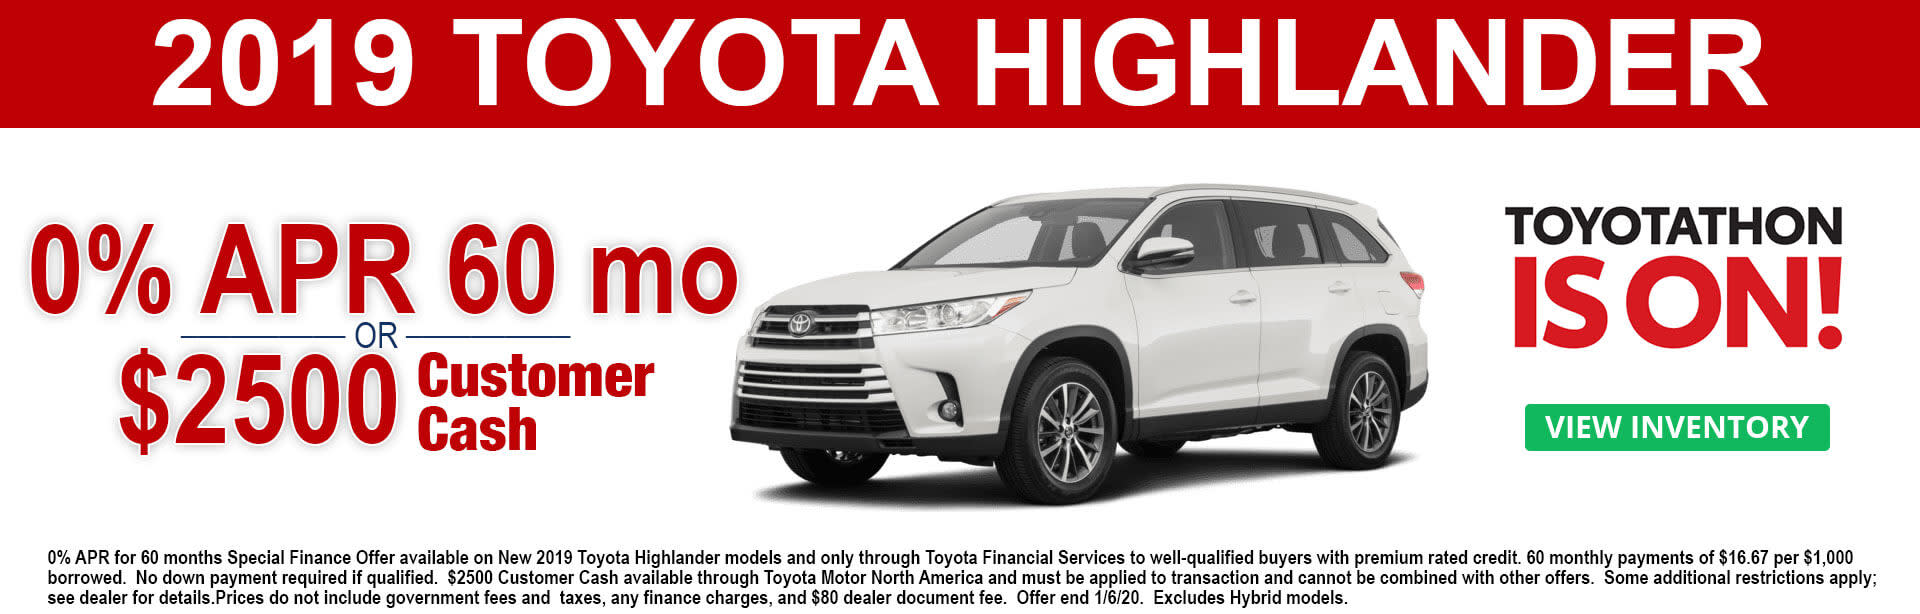 2019 Toyota Highlander APR and Cash Offer